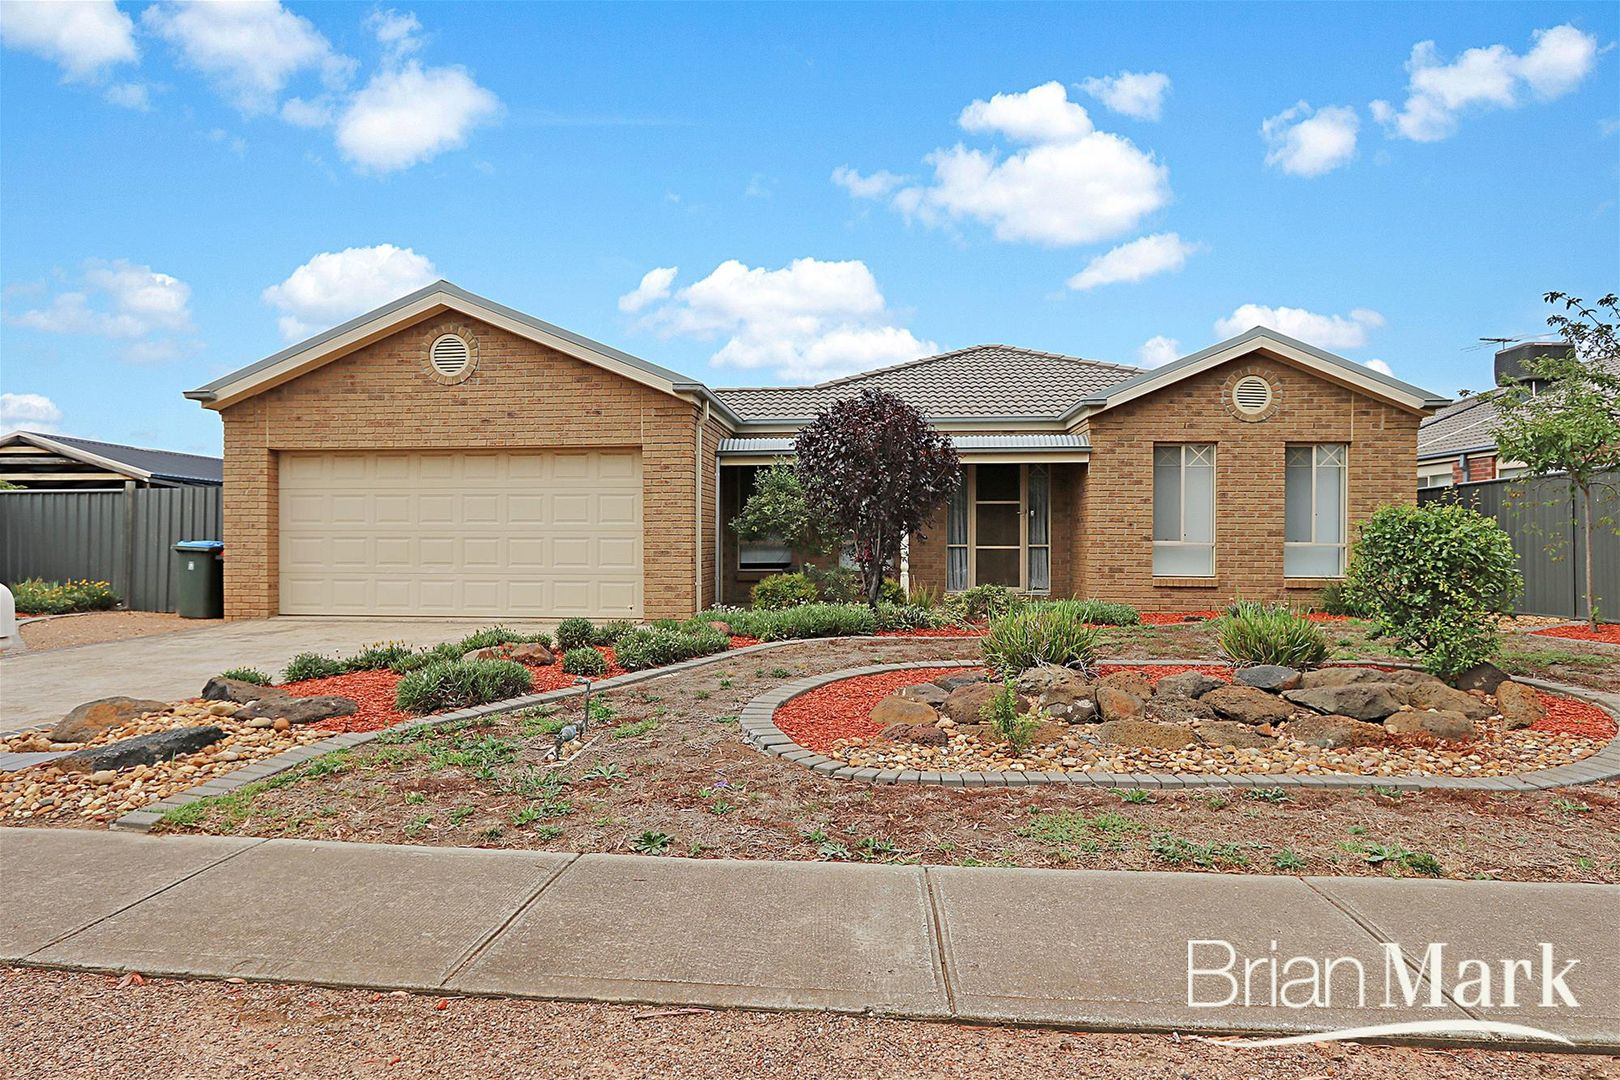 20 Eildon Avenue, Manor Lakes VIC 3024, Image 0